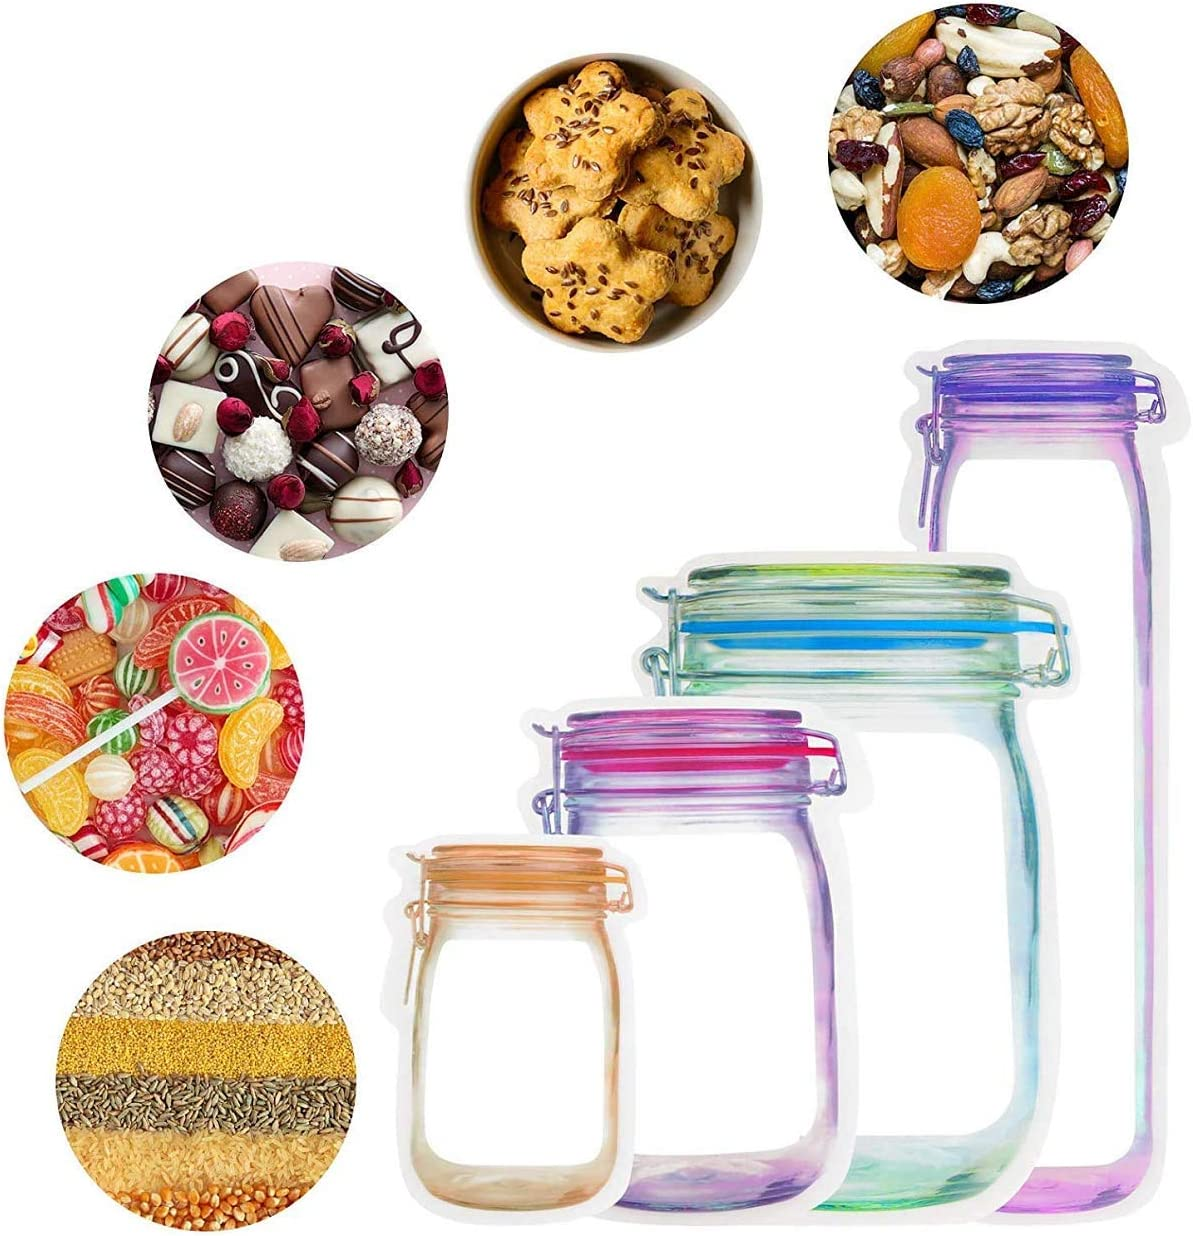 GiWuh 32 PCS Reusable Jar Bags Mason Storage Bag Sealed Zipper Food Bag Used in Food Retail, Nuts and Biscuits Waterproof and Moisture Proof Suitable for Travel, Camping (Multicolor)